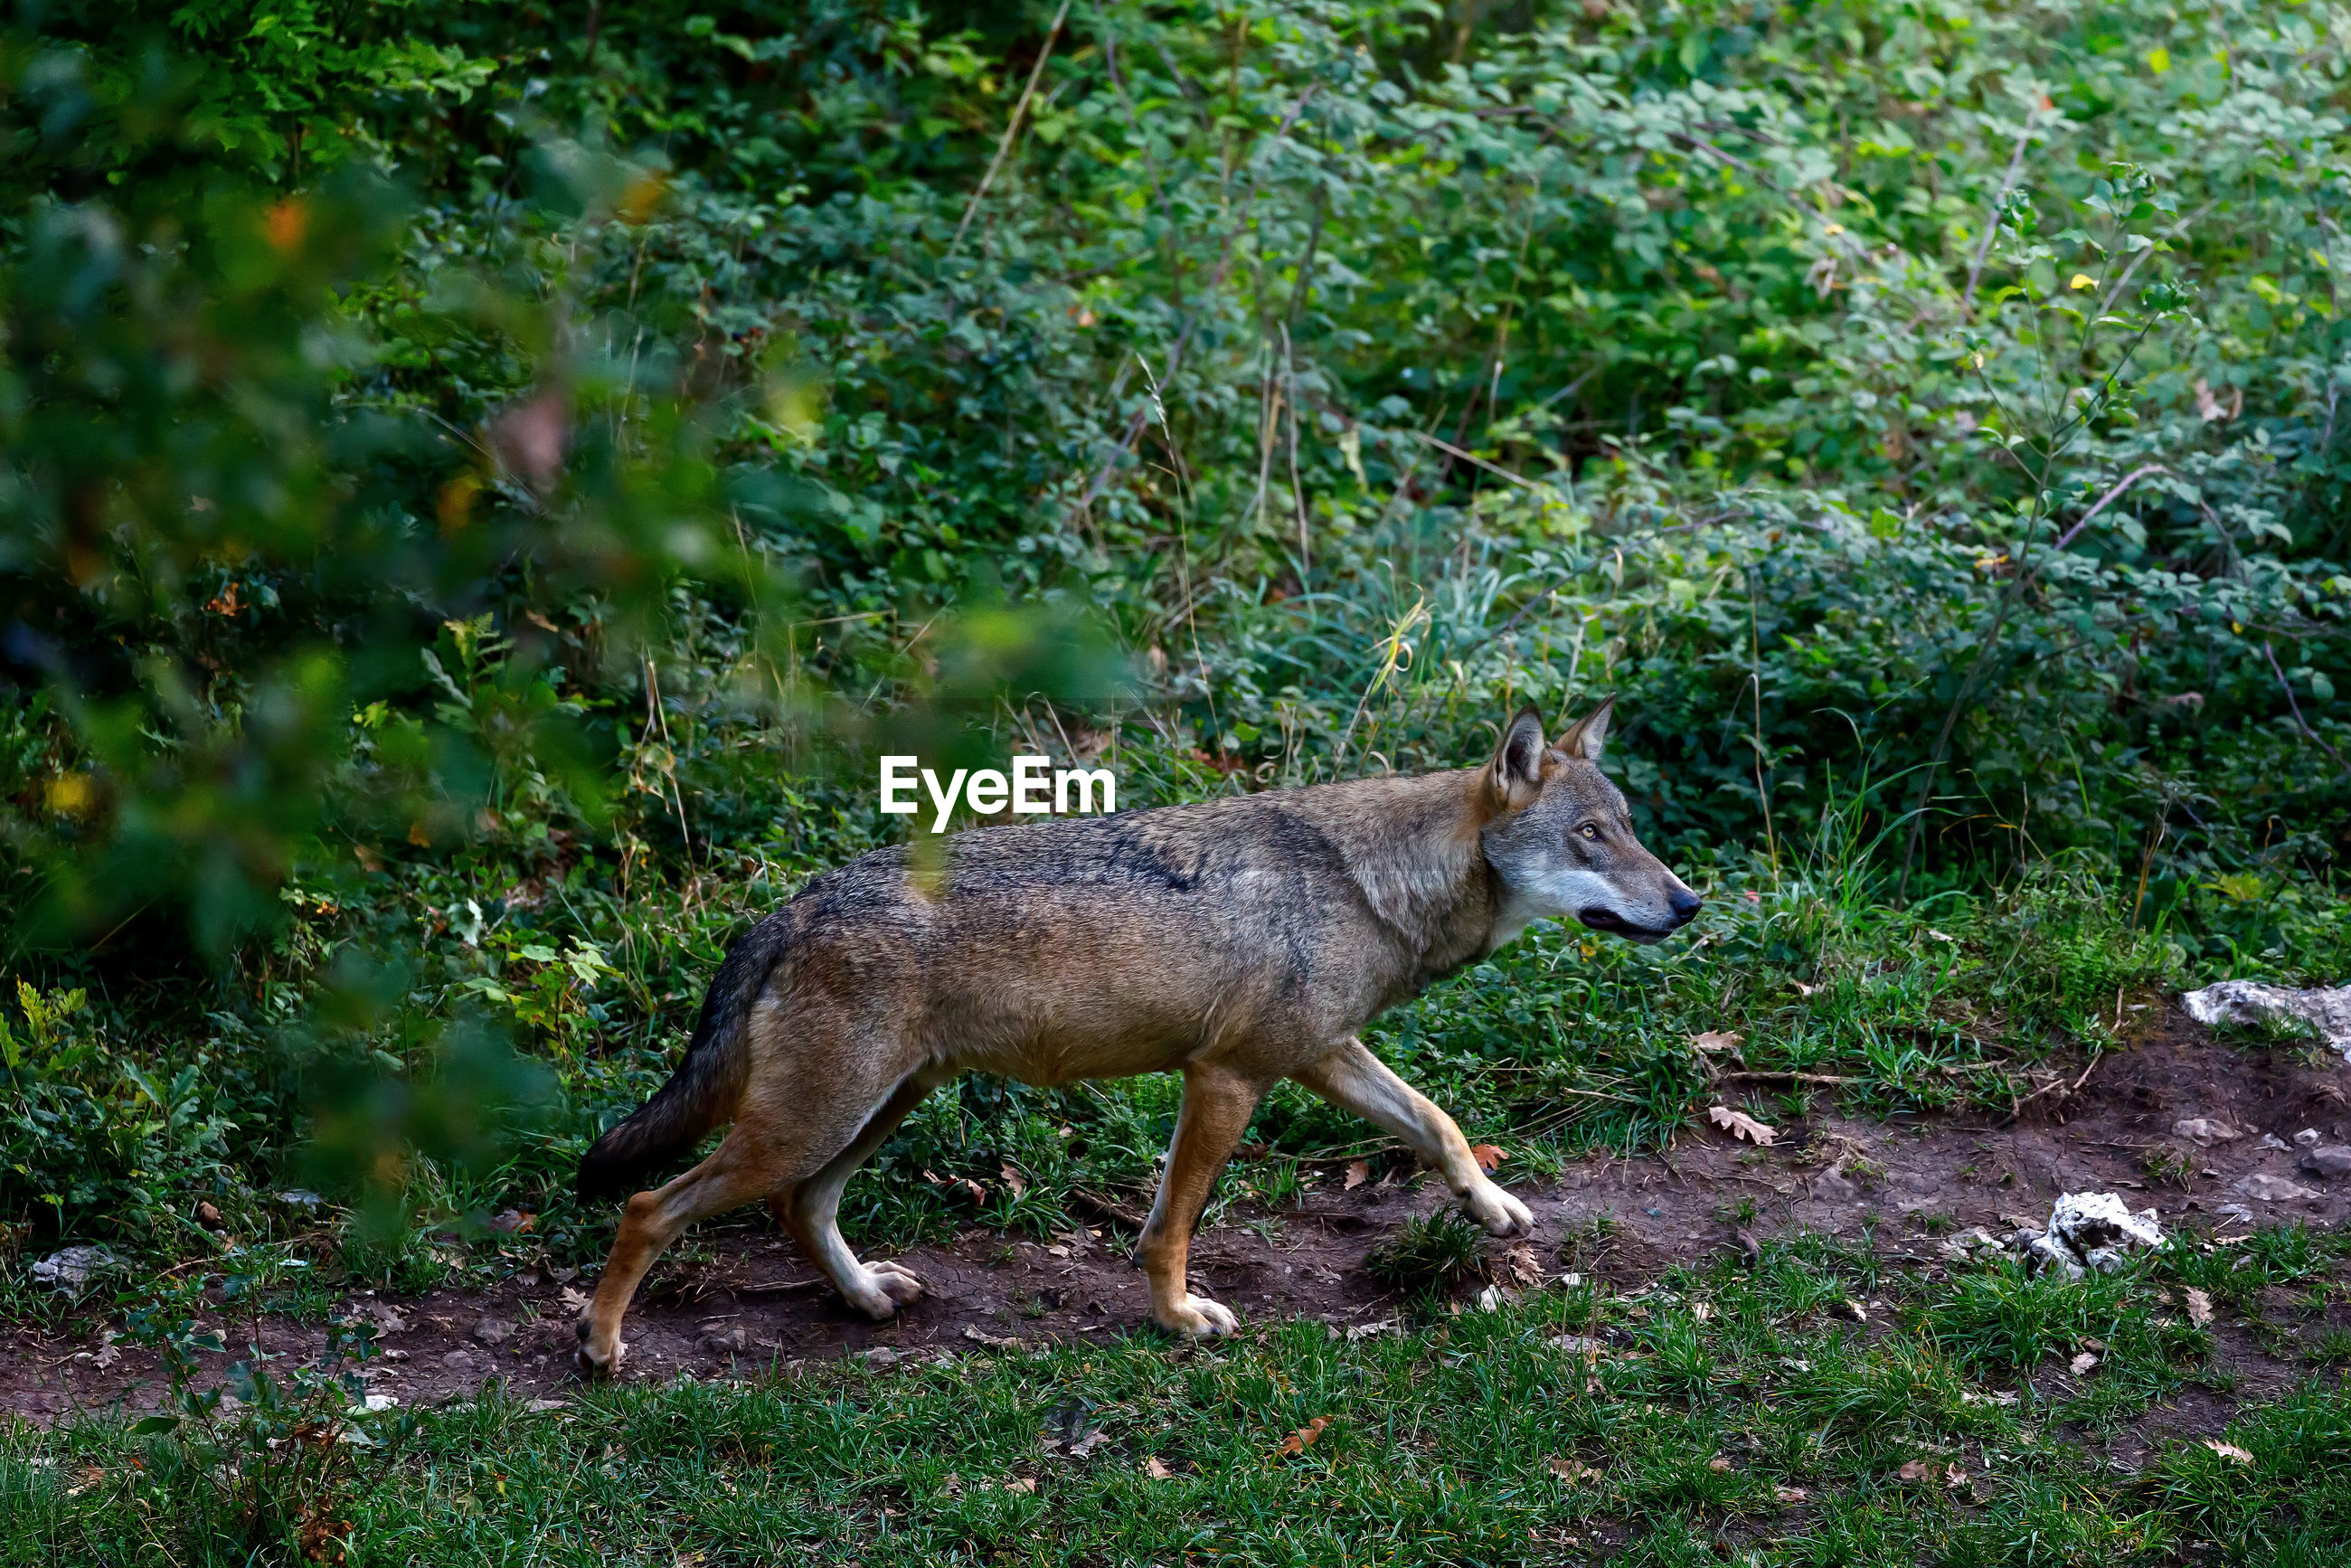 Male specimen of the dominant alpha wolf. the lone wolf walks on the forest path.